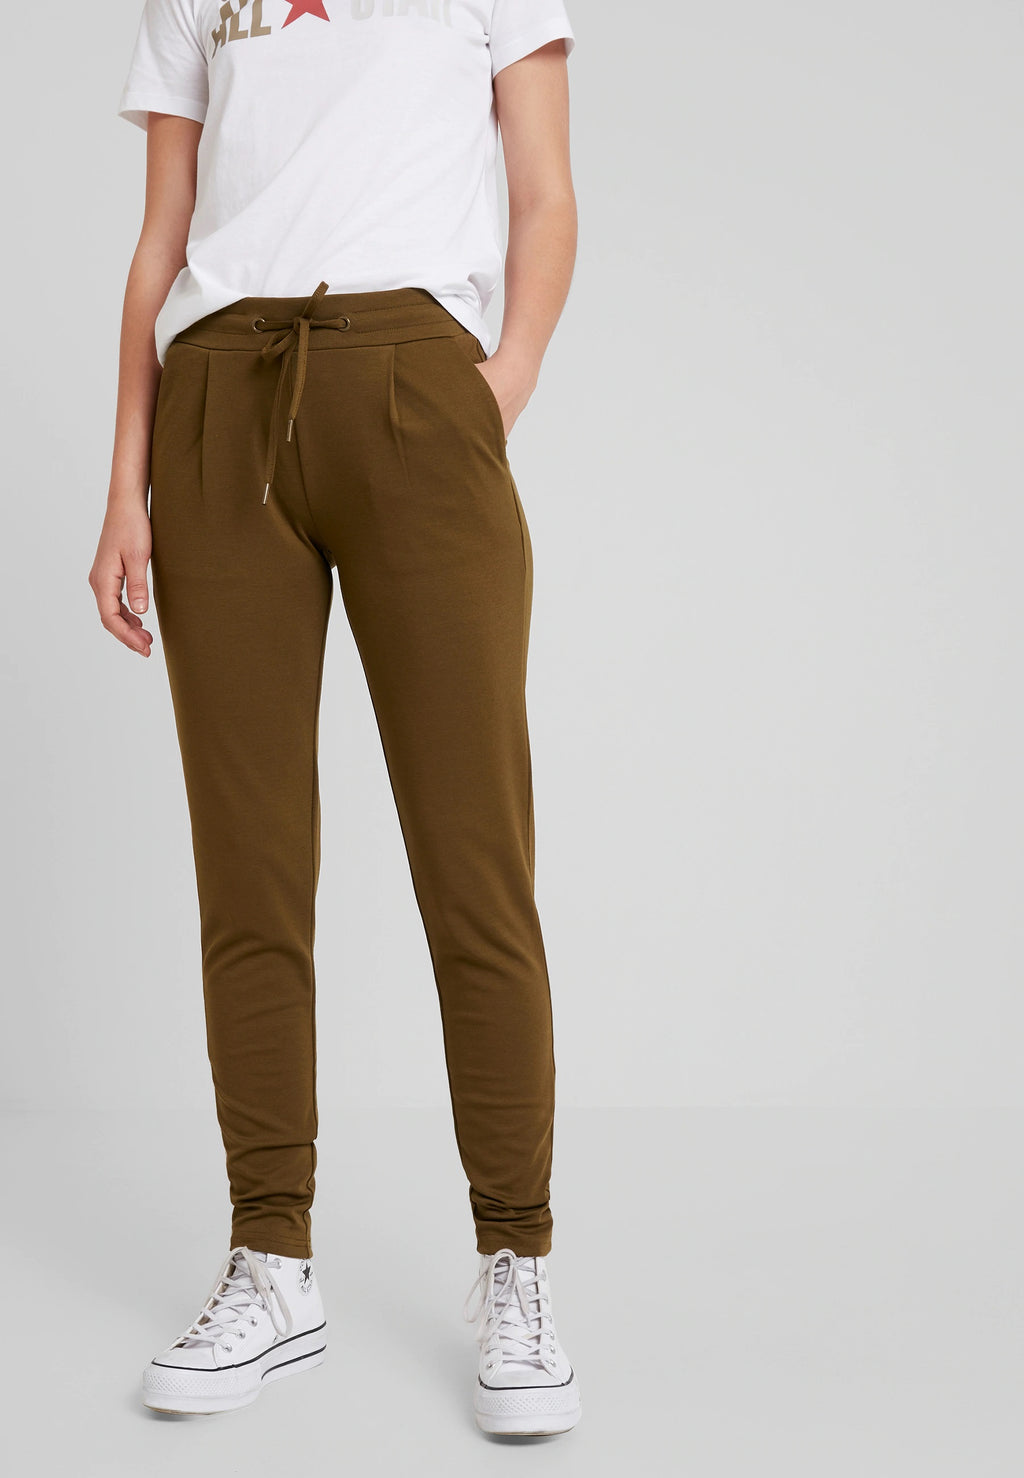 KATE PA trousers - dark olive